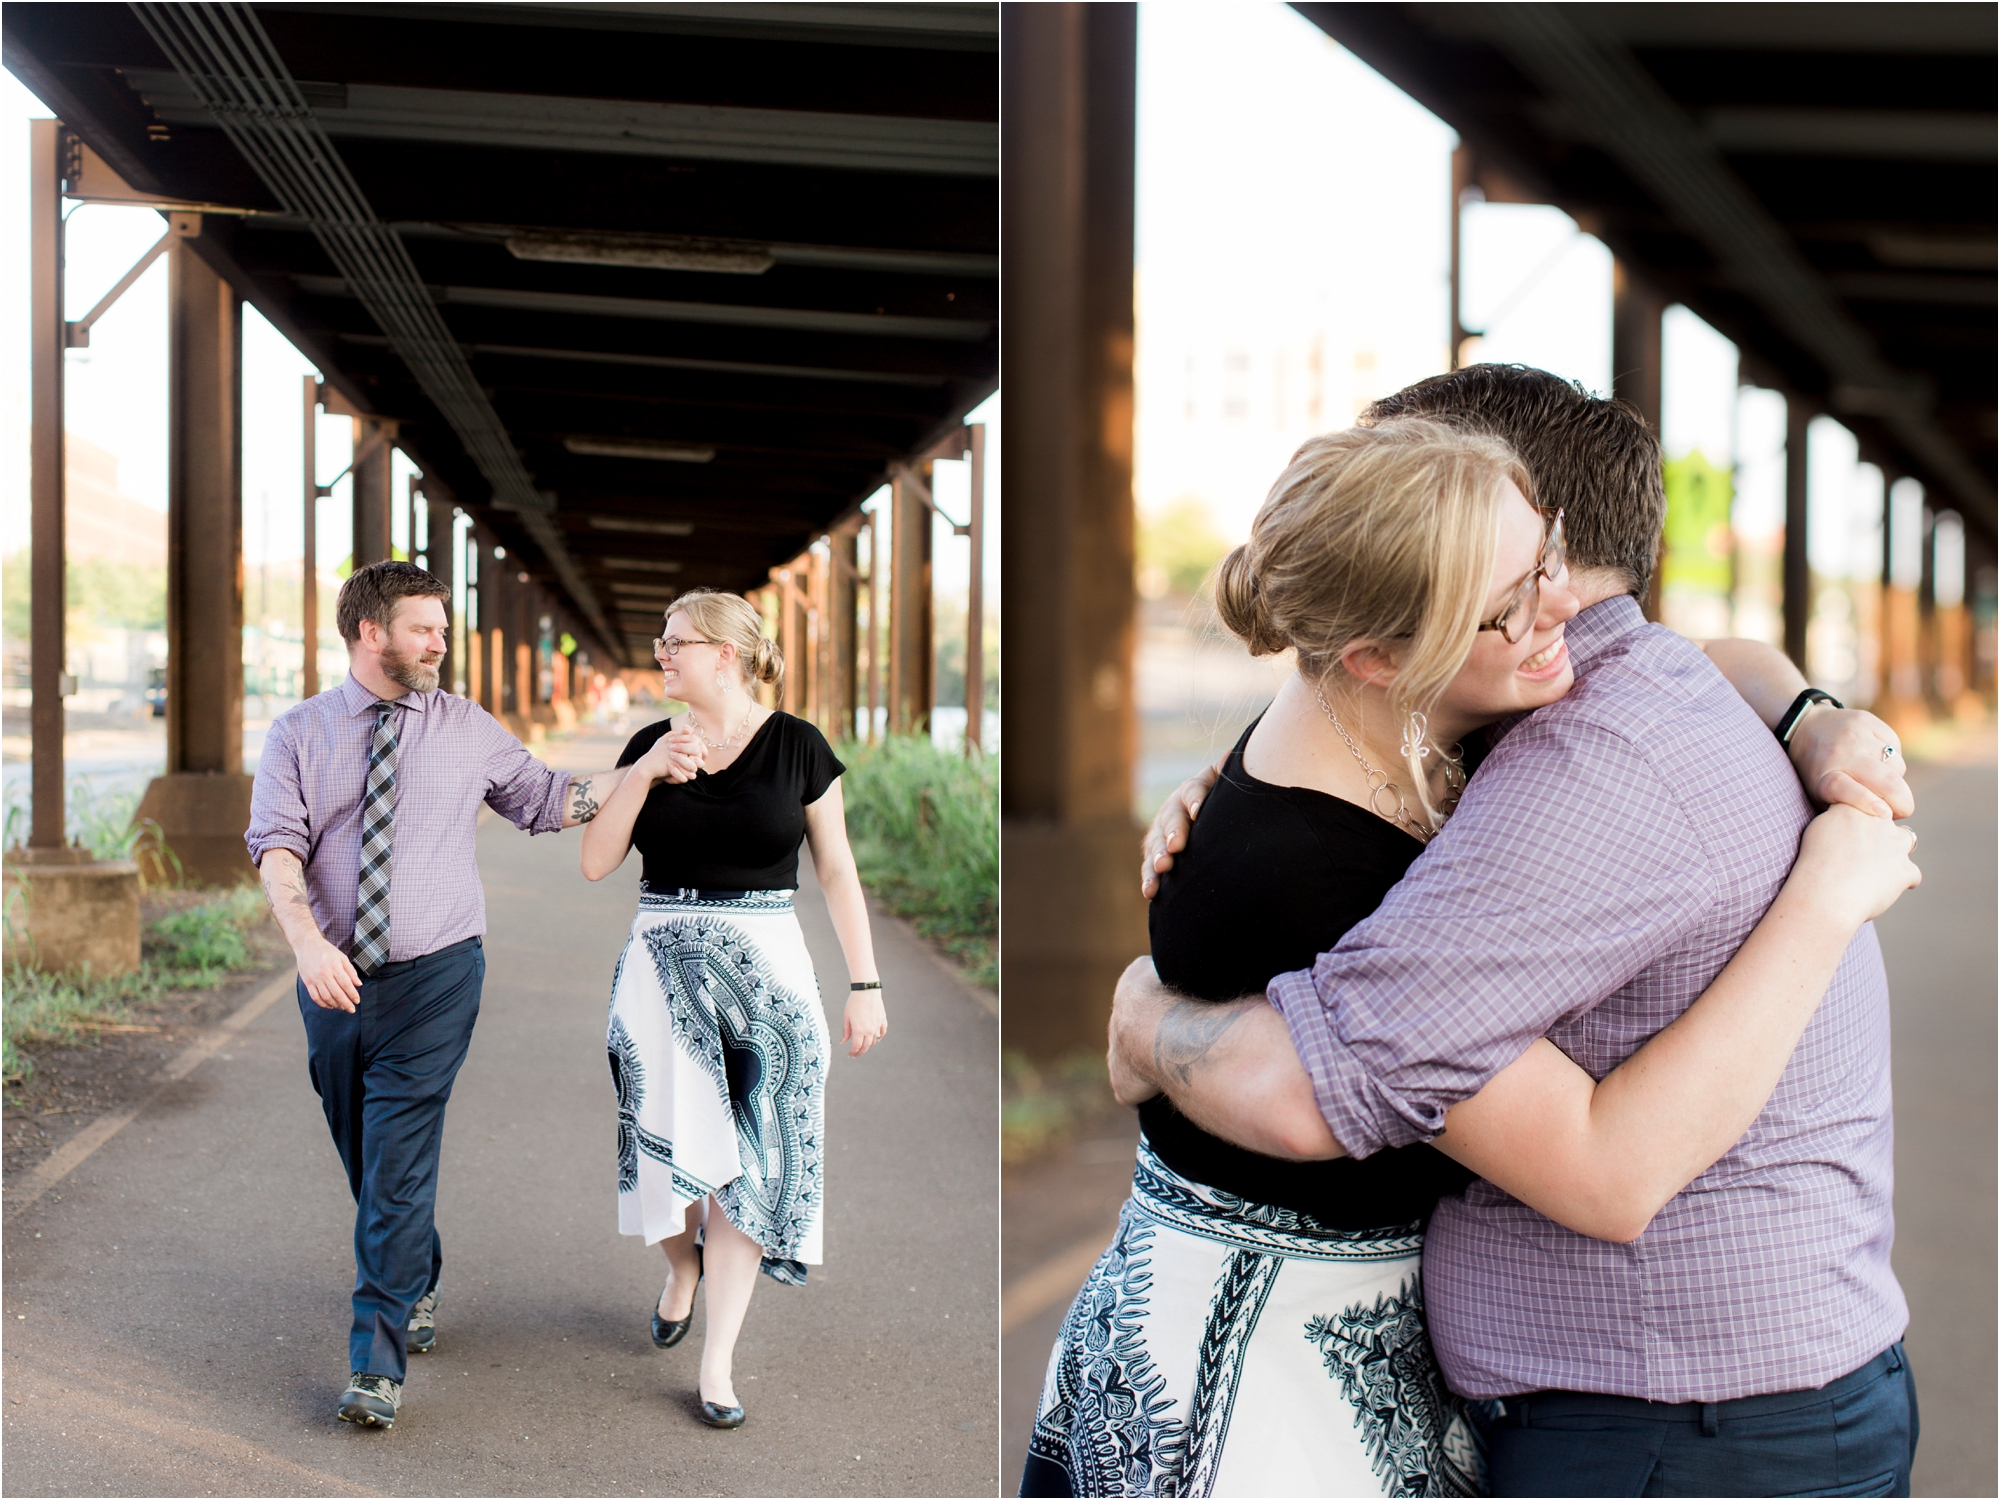 james-caroline-downtown-richmond-virginia-engagement_0016.jpg